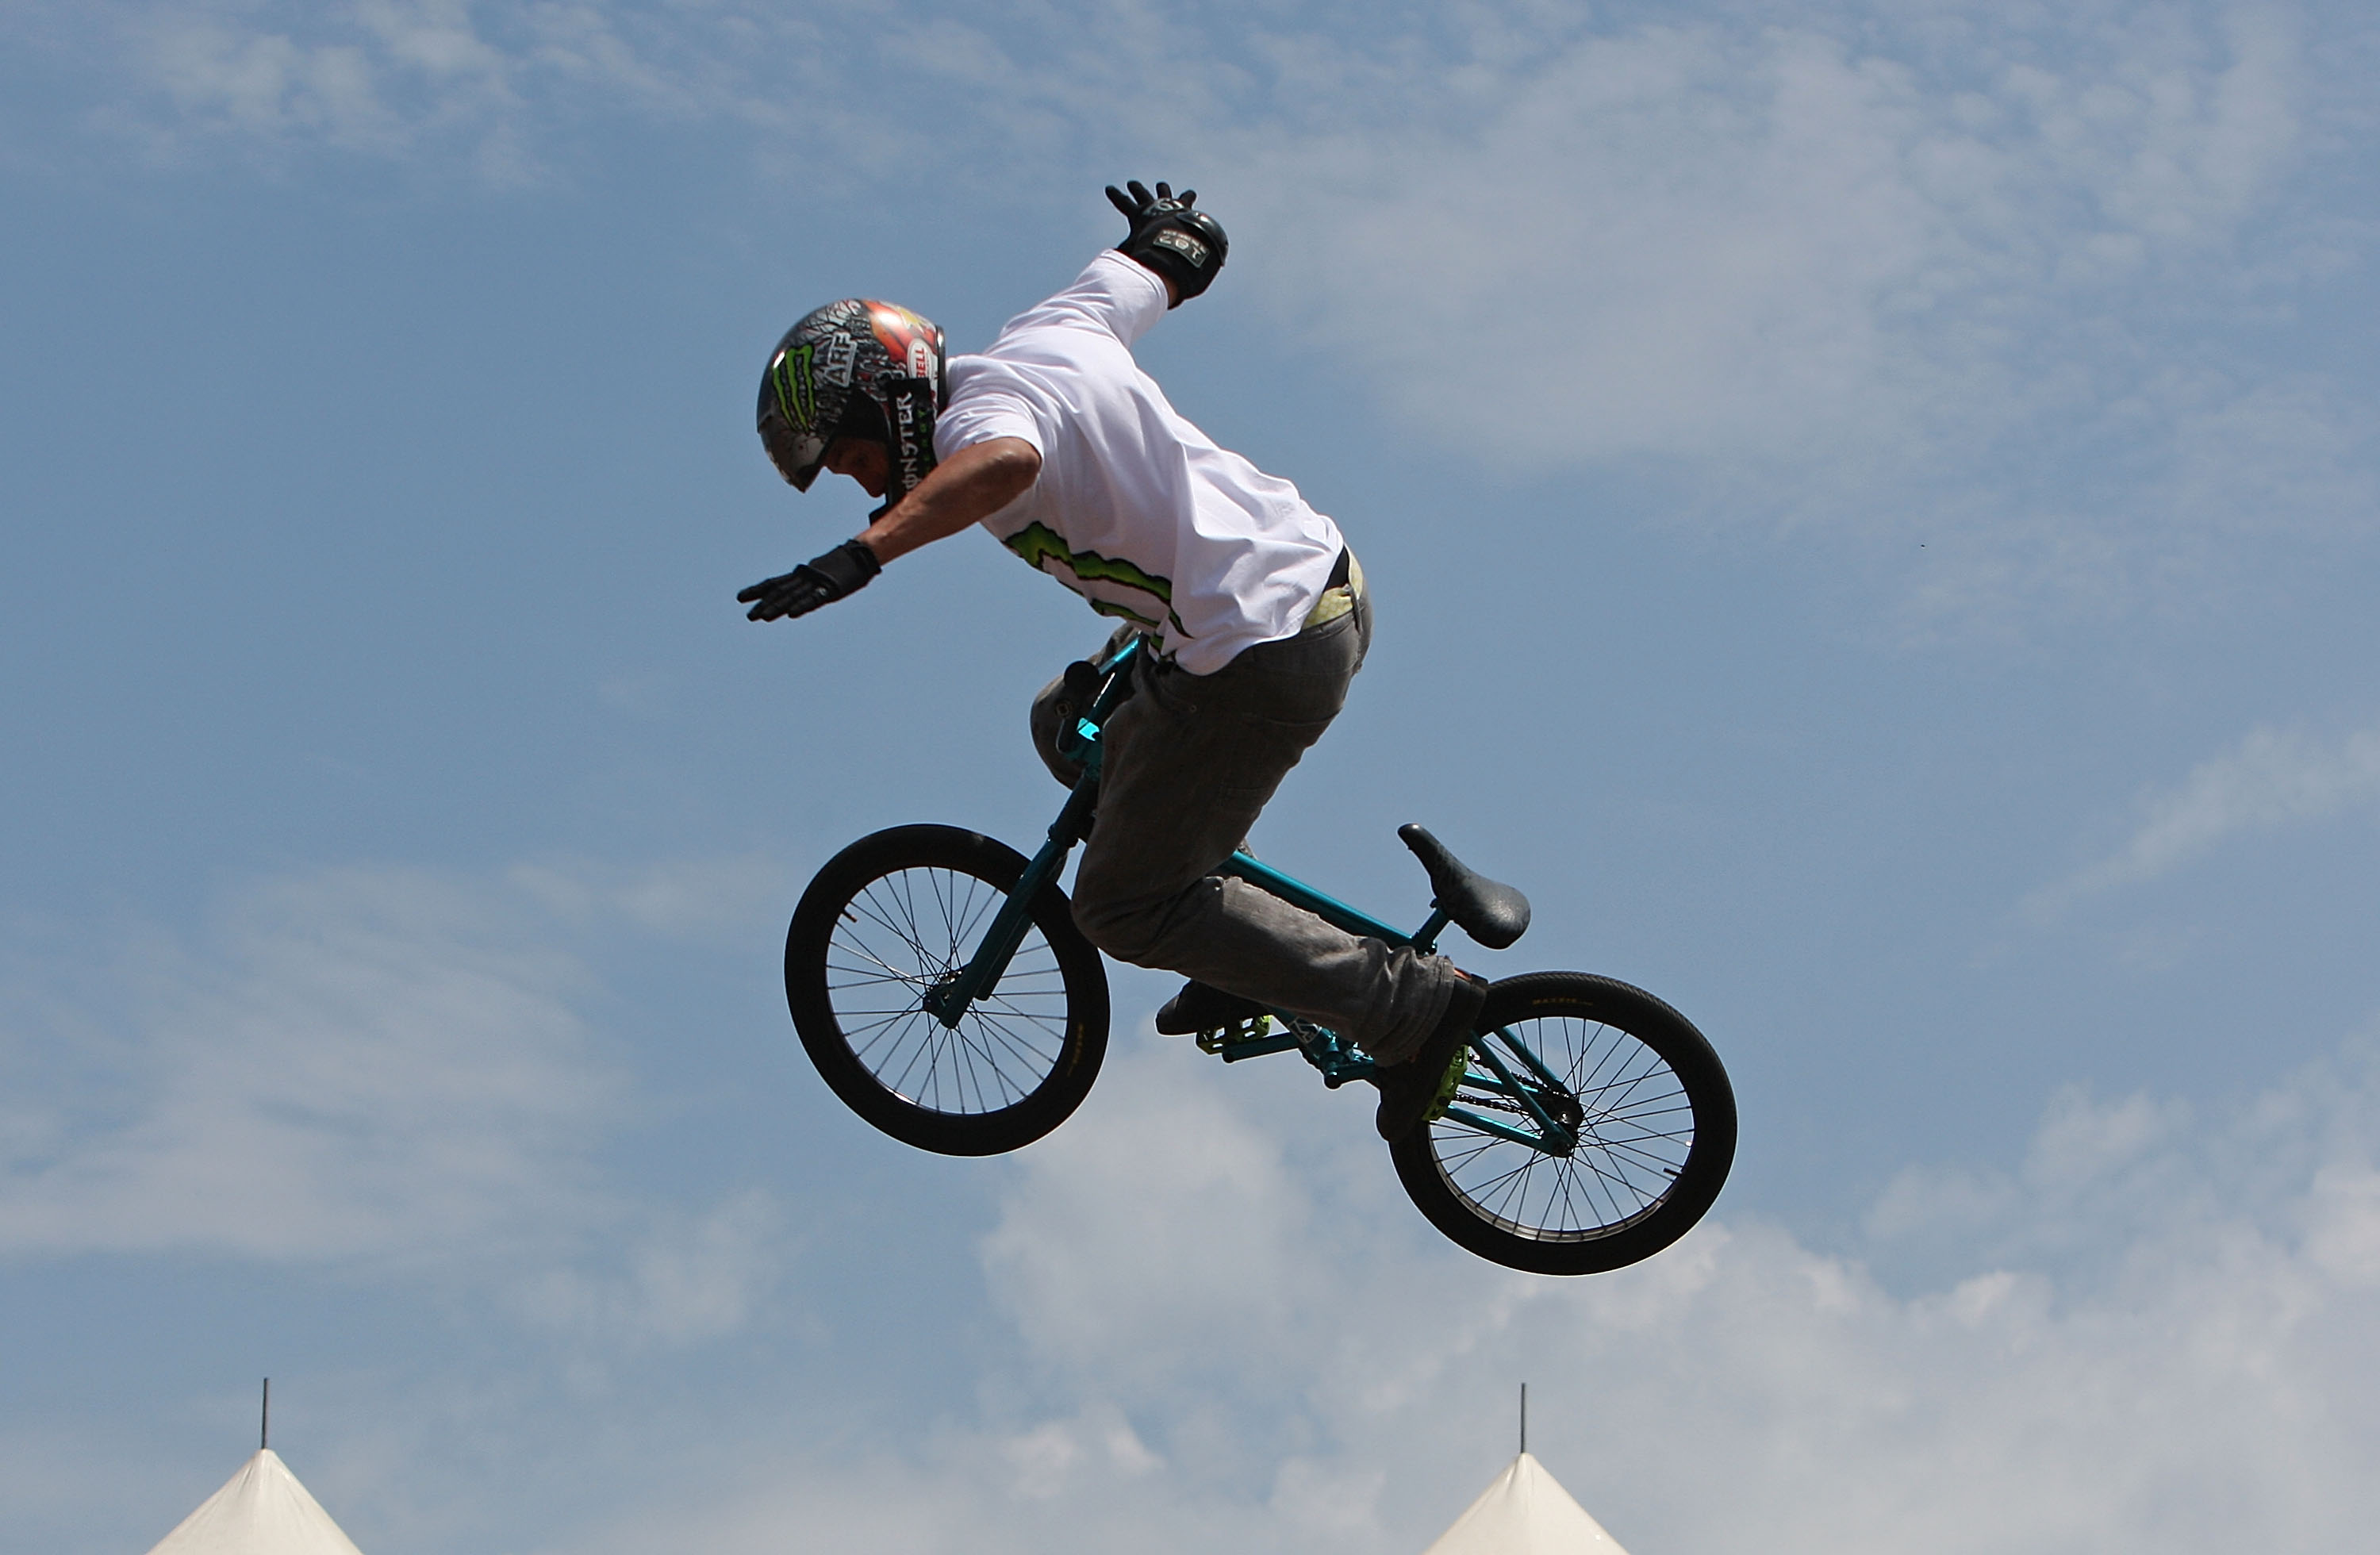 Dave Mirra performs on his way to first place during the BMX Park Final of the Nike 6.0 BMX Open on June 27, 2009 at Grant Park in Chicago, Illinois.